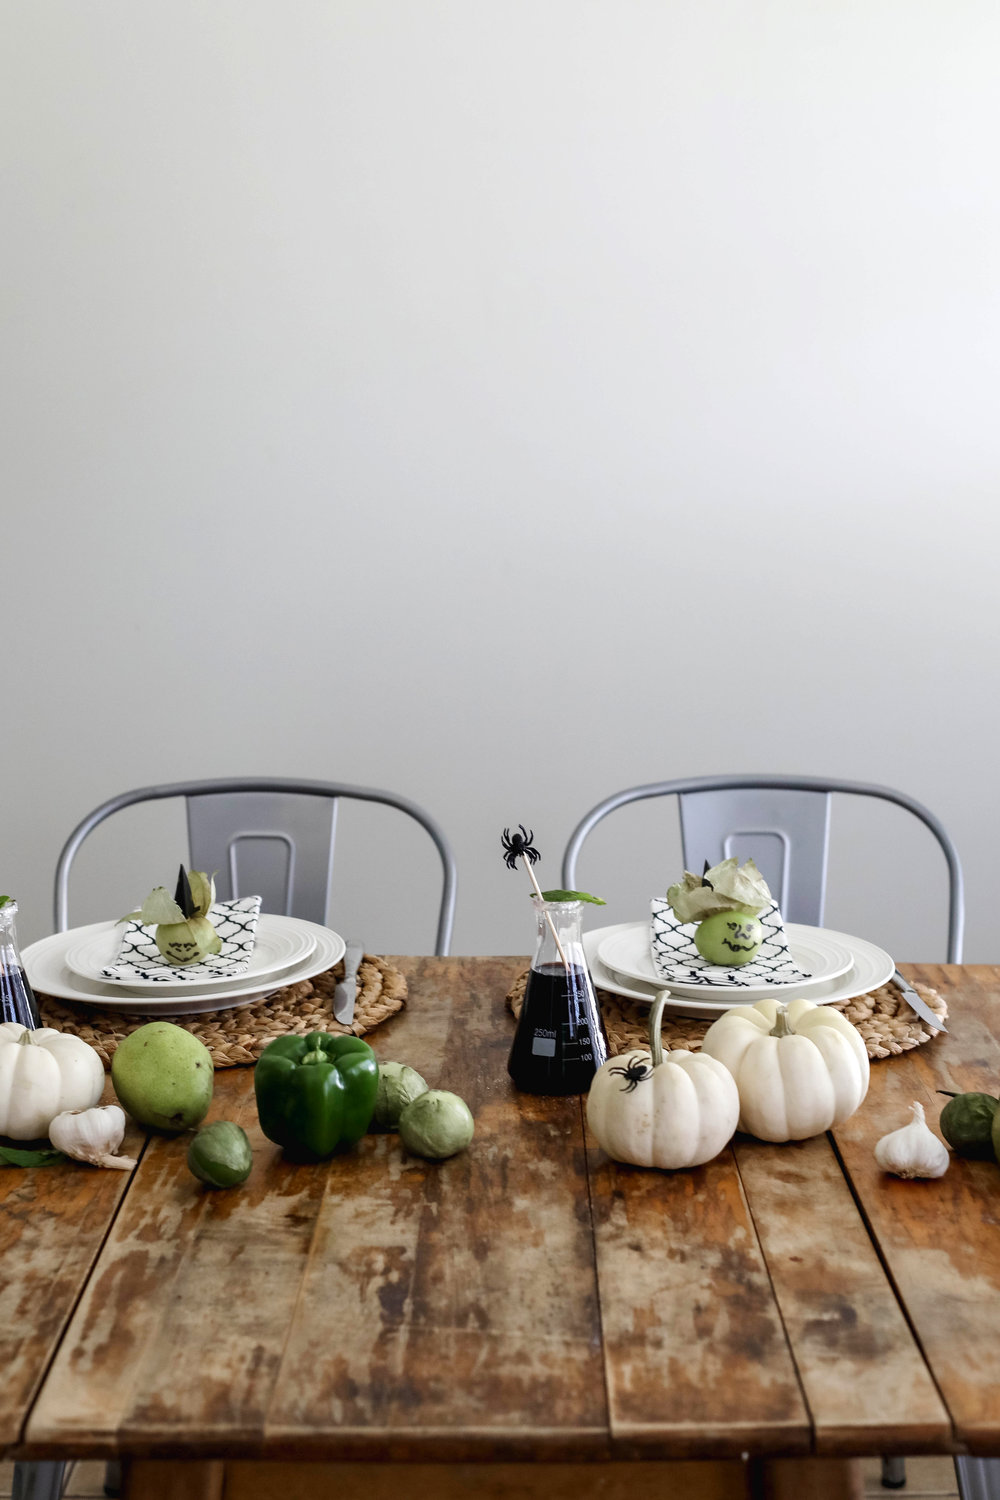 Halloween tablescape with tomatillos